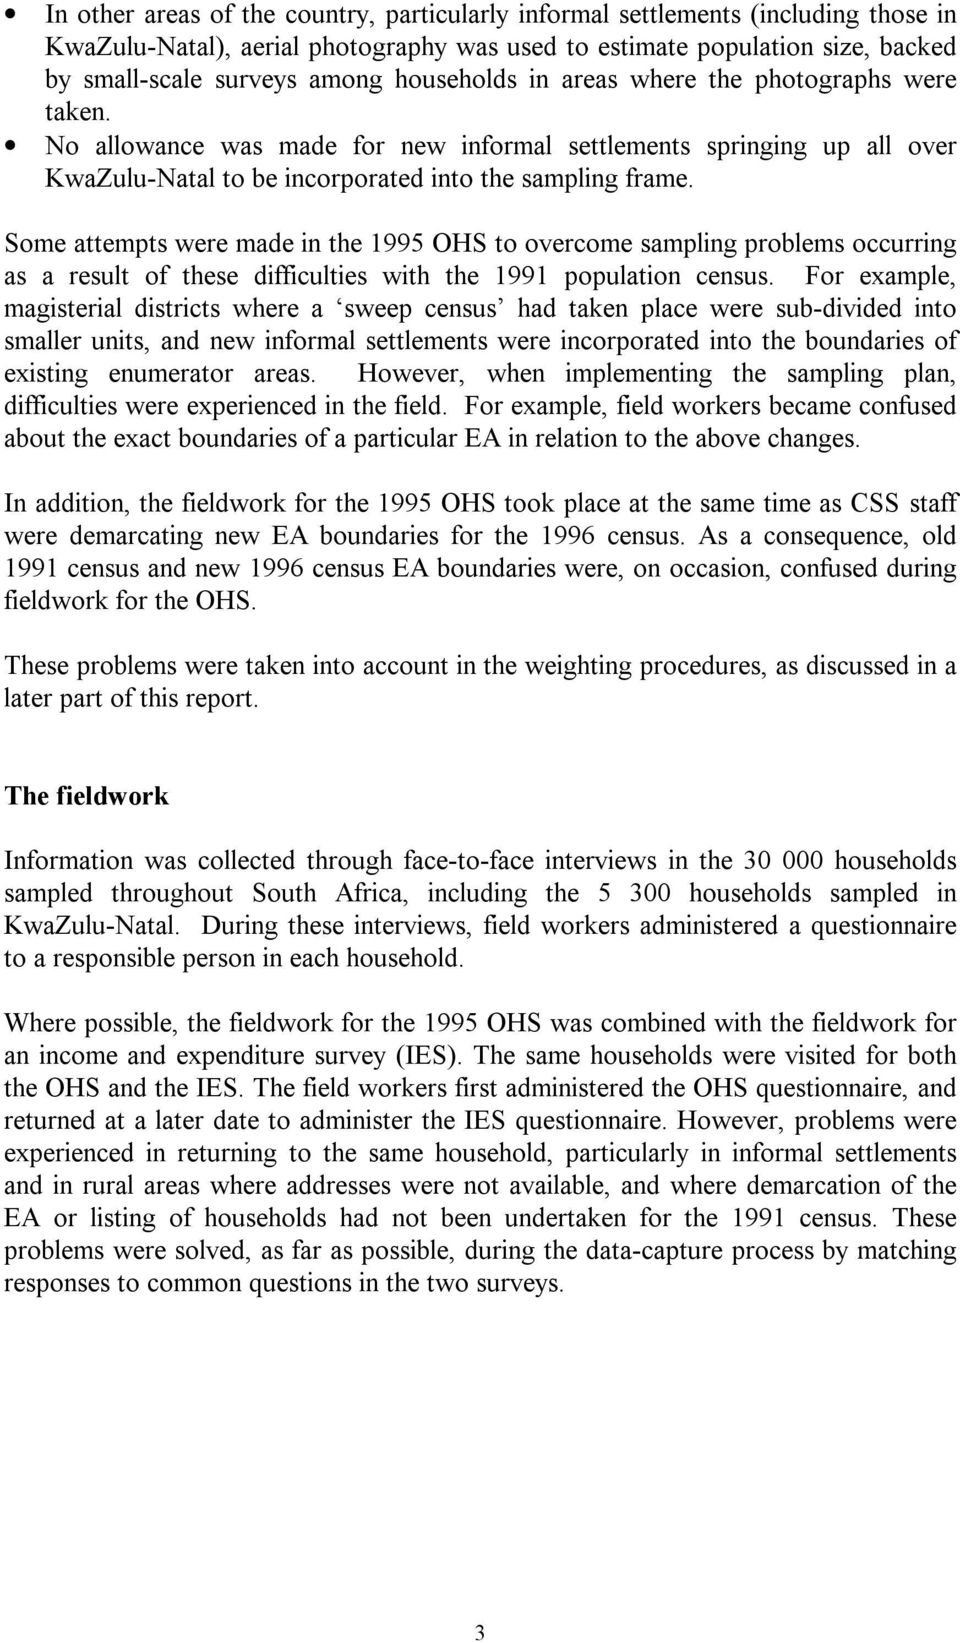 Some attempts were made in the 1995 OHS to overcome sampling problems occurring as a result of these difficulties with the 1991 population census.